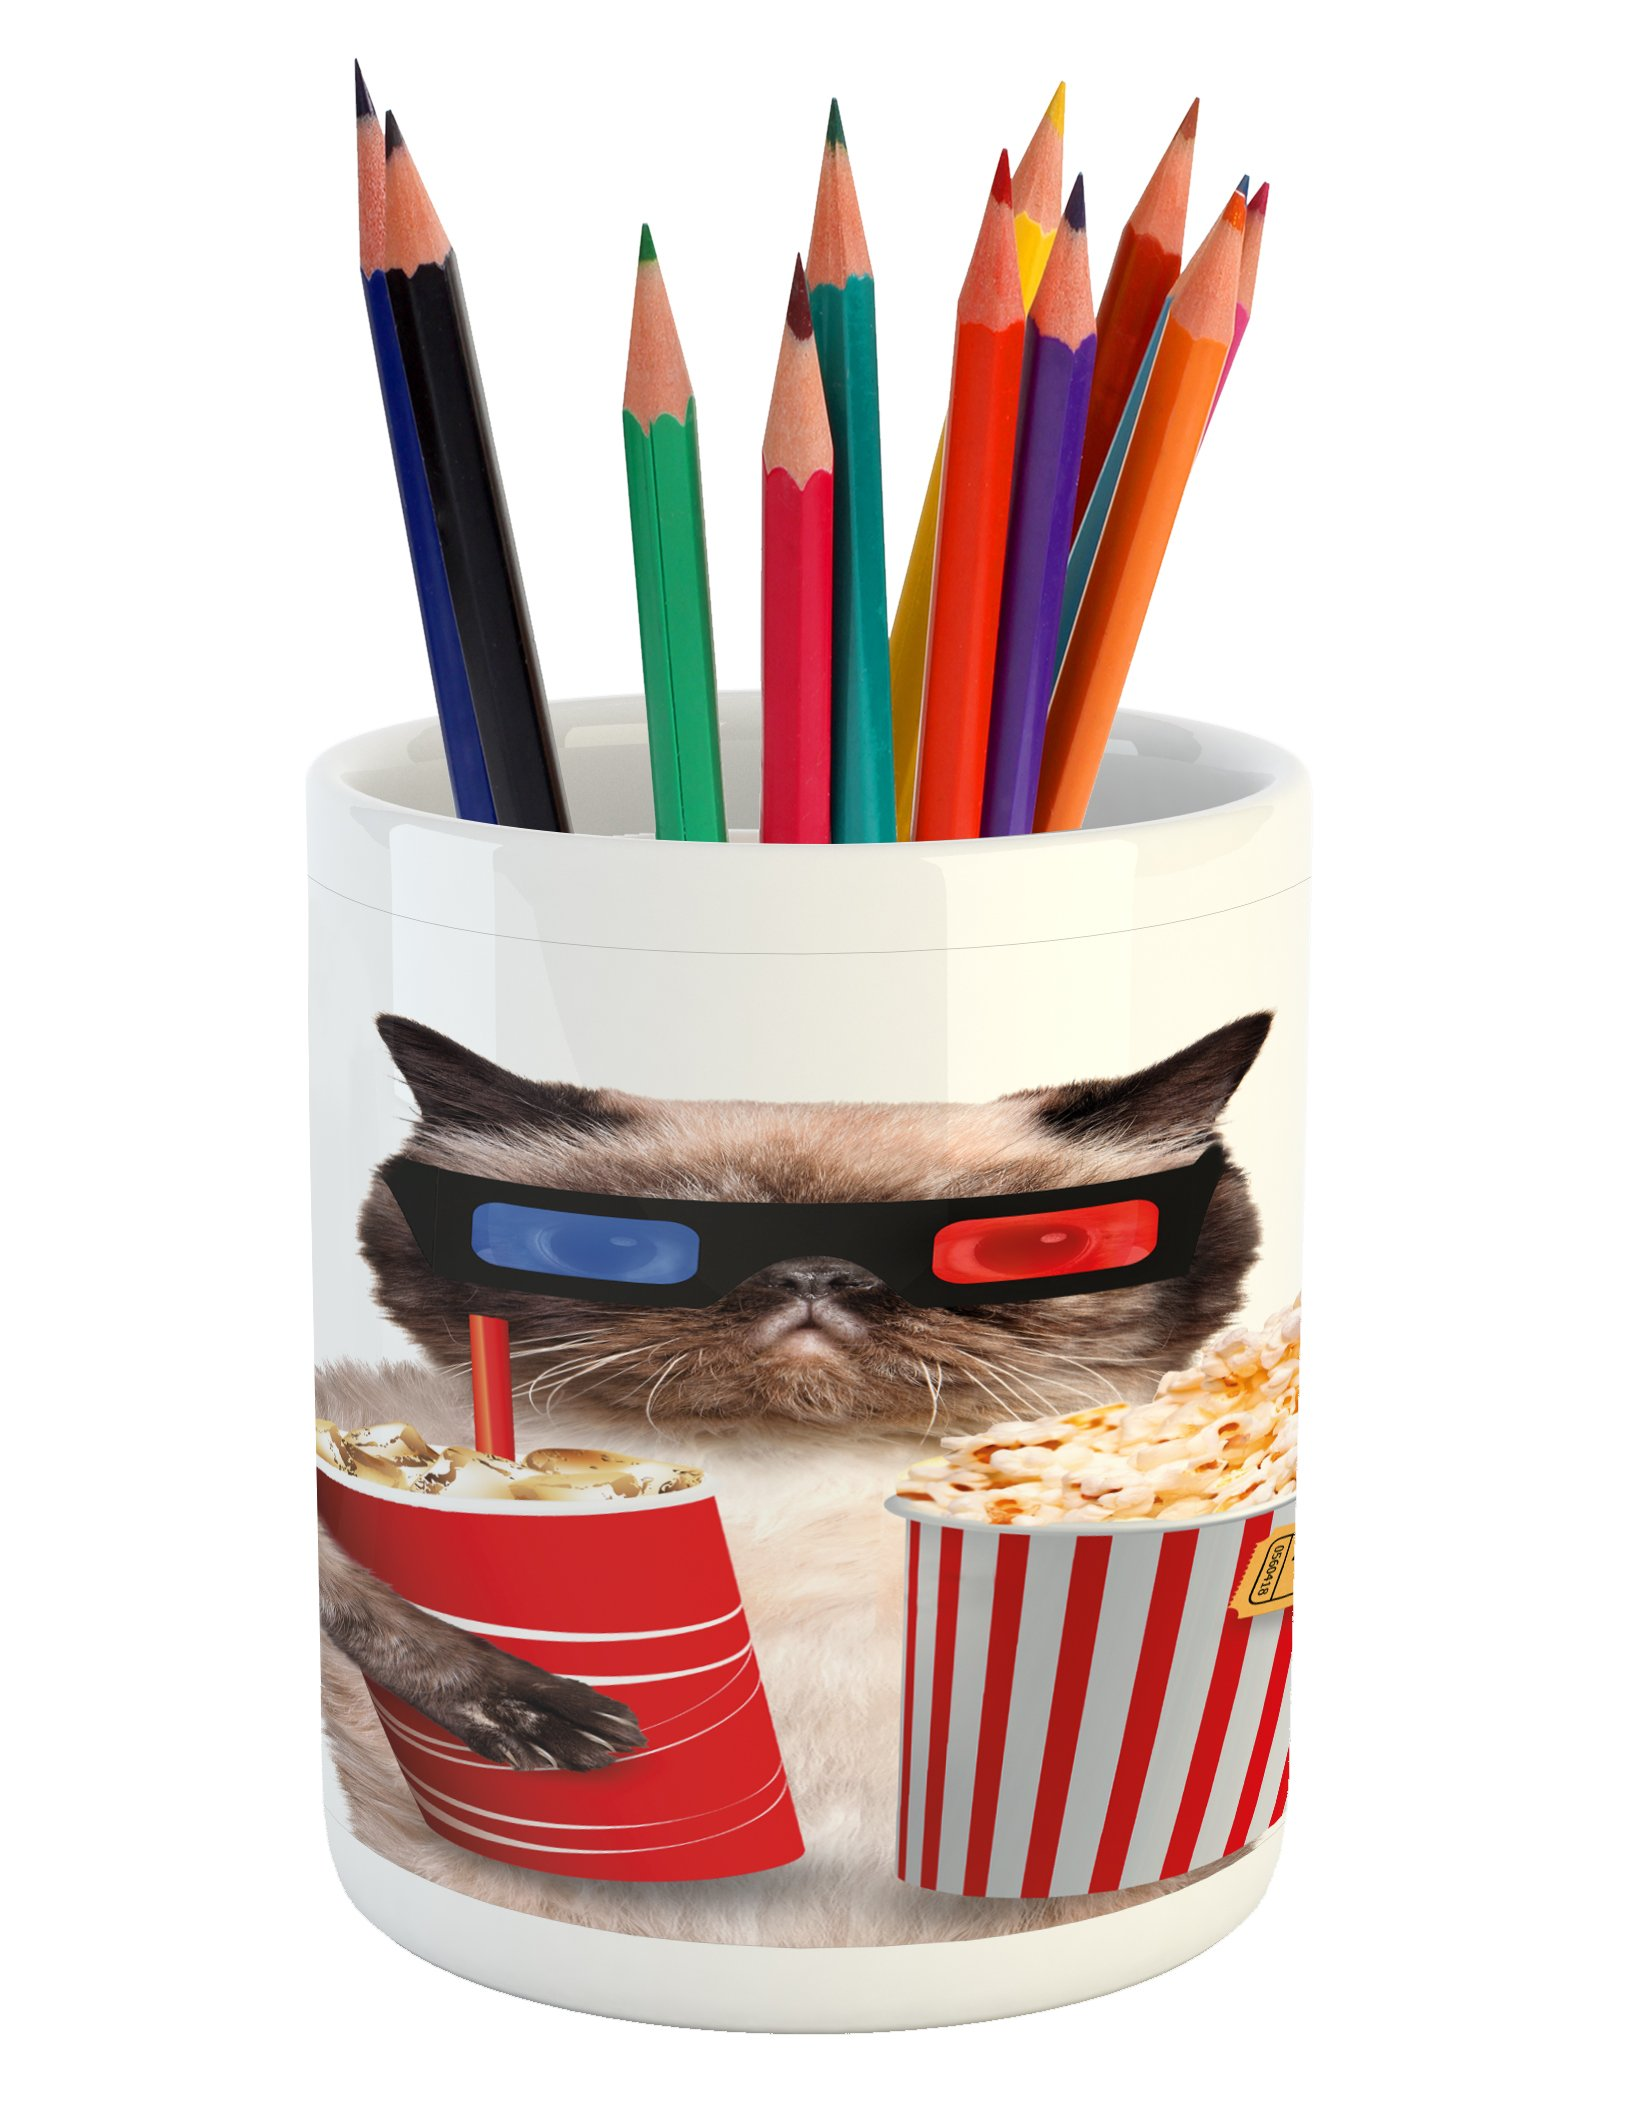 Ambesonne Movie Theater Pencil Pen Holder, Cat with Popcorn and Drink Watching Movie Glasses Entertainment Cinema Fun, Printed Ceramic Pencil Pen Holder for Desk Office Accessory, Multicolor